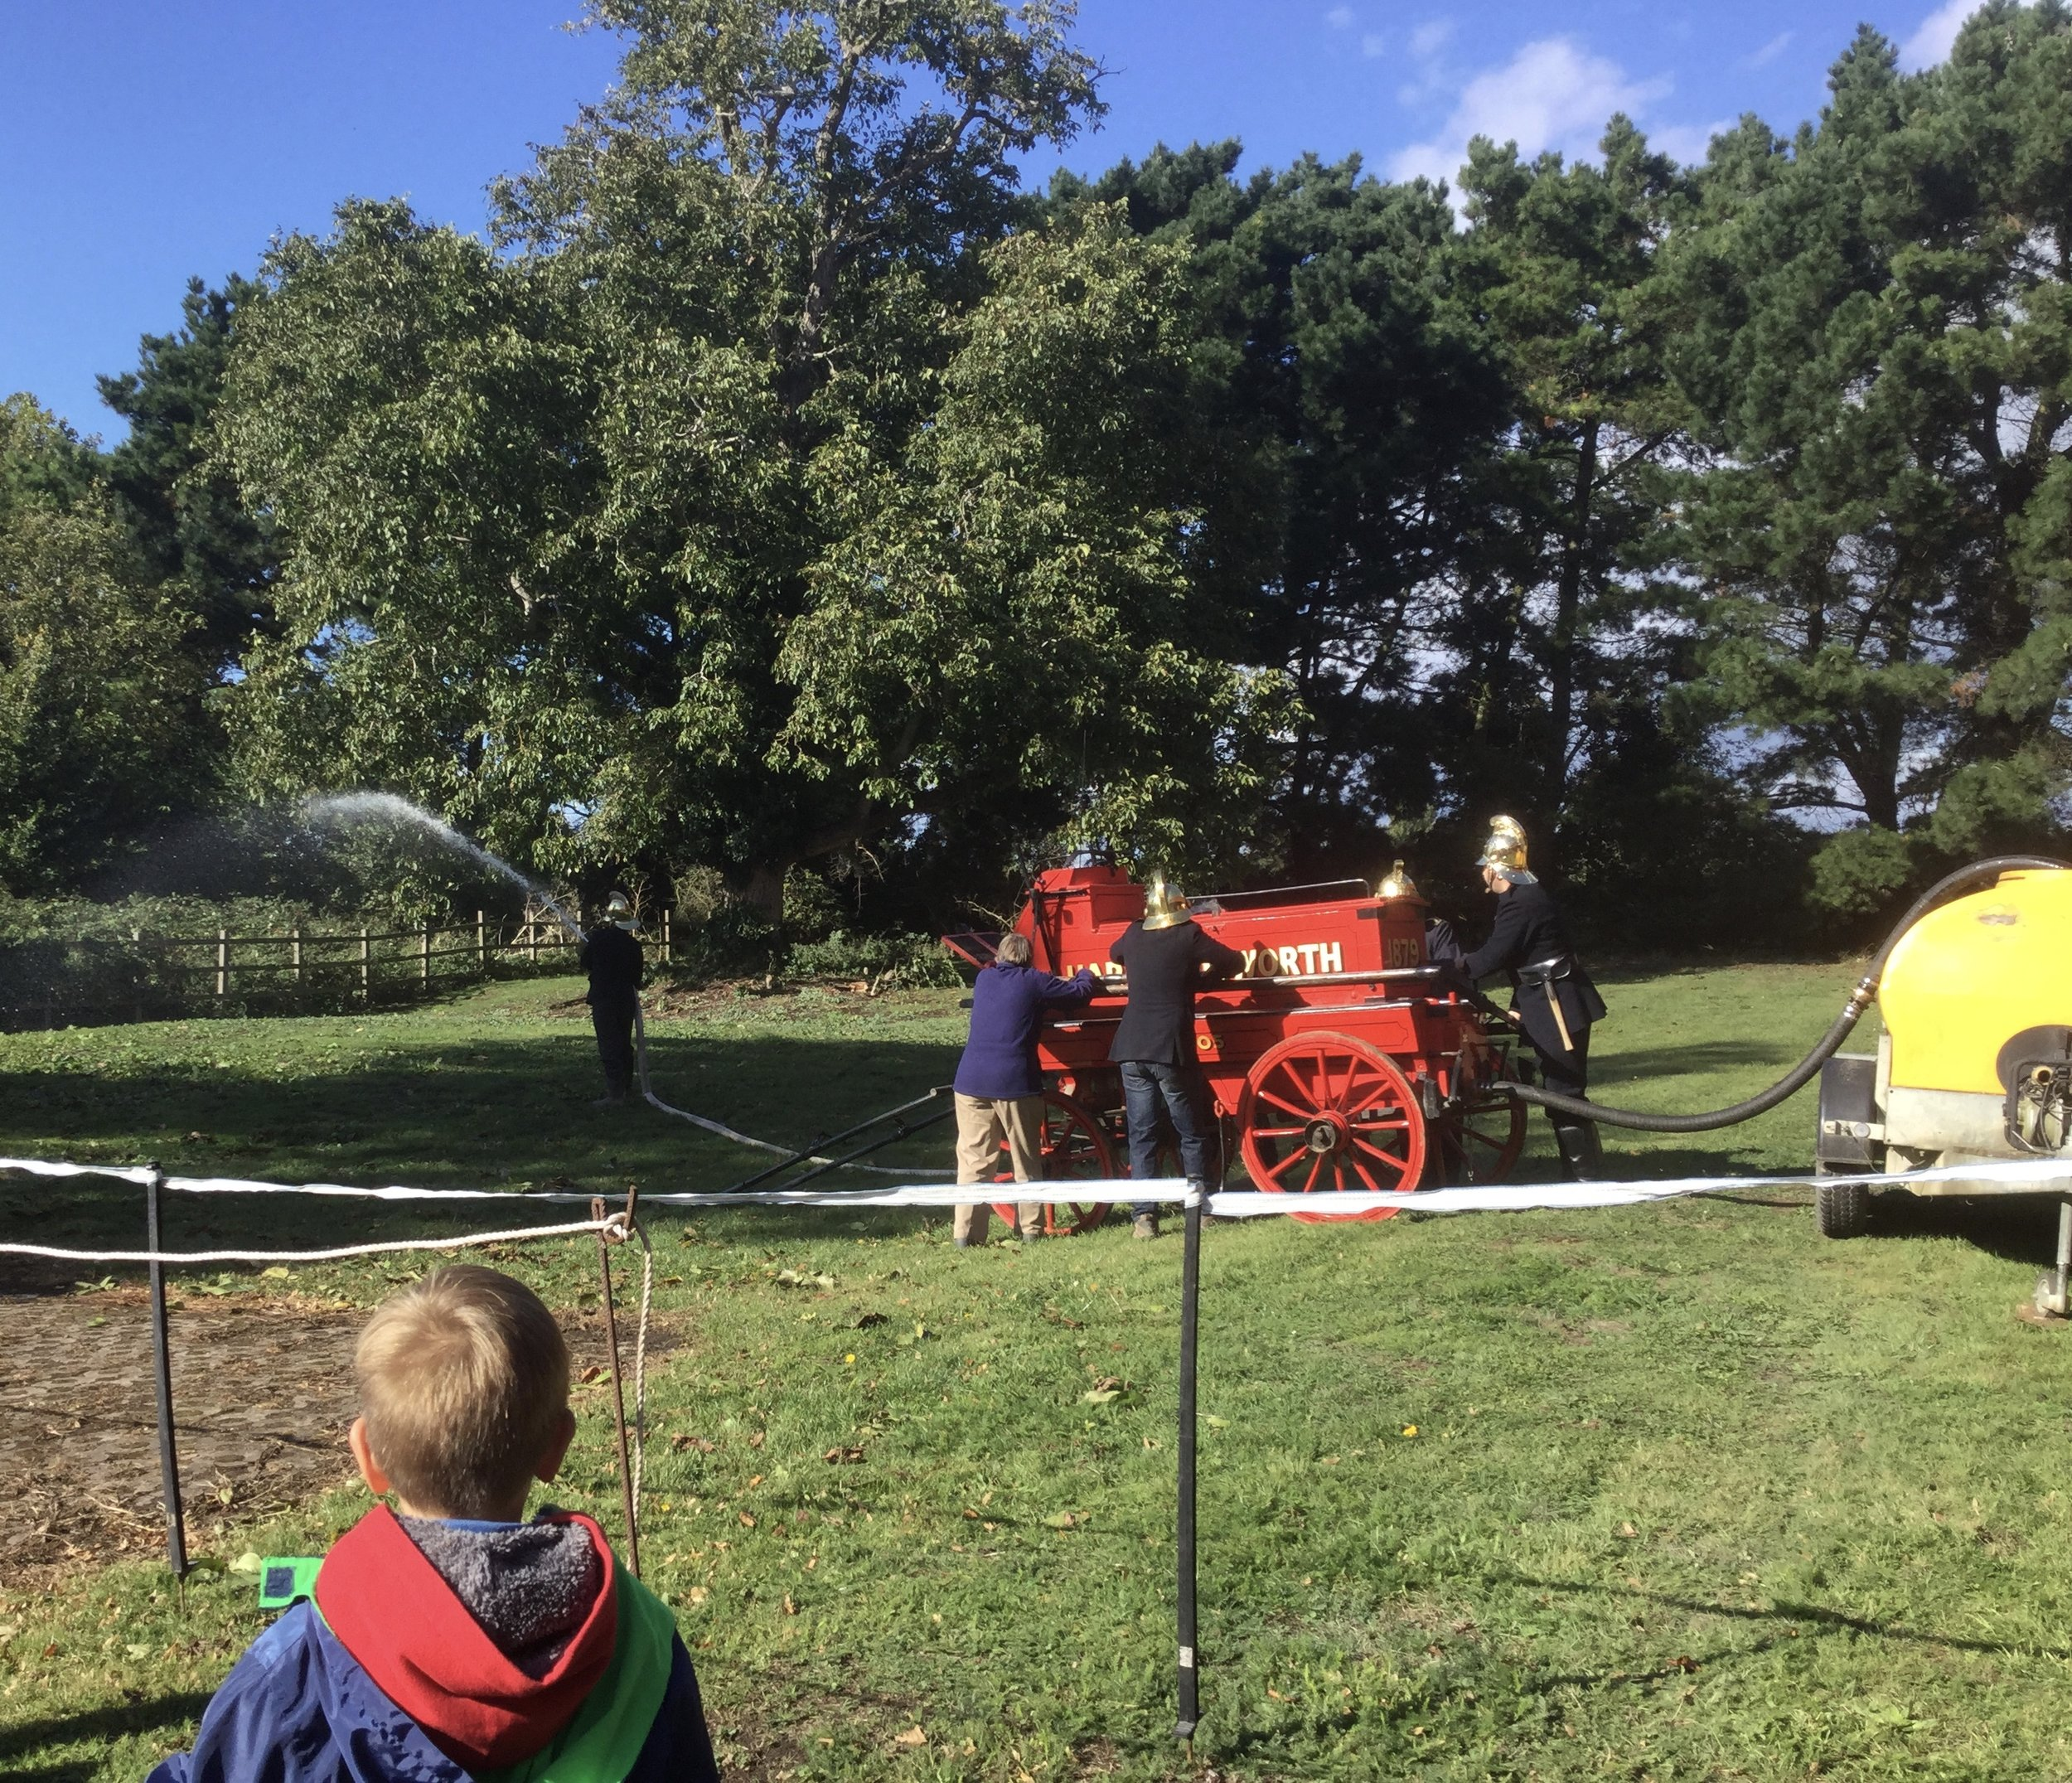 Fascinating demonstration of how the hand-pumped village fire engine worked to put out fires